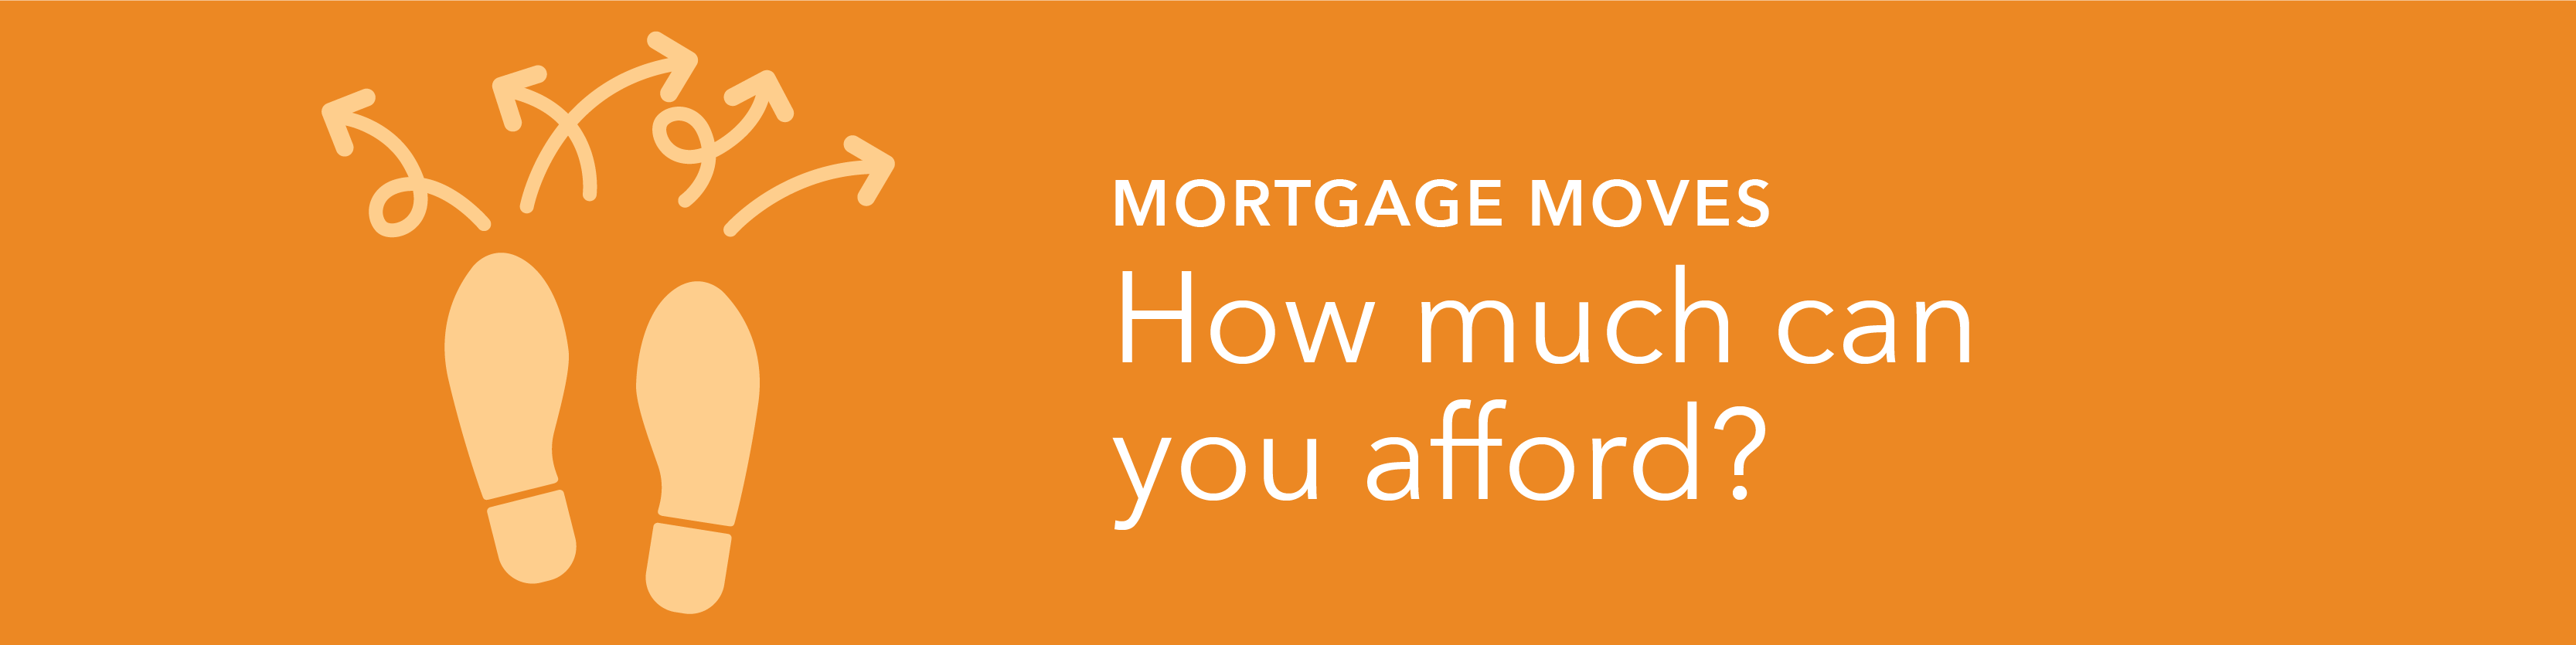 Mortgage moves how much can you afford world class for How much to earn to buy a house